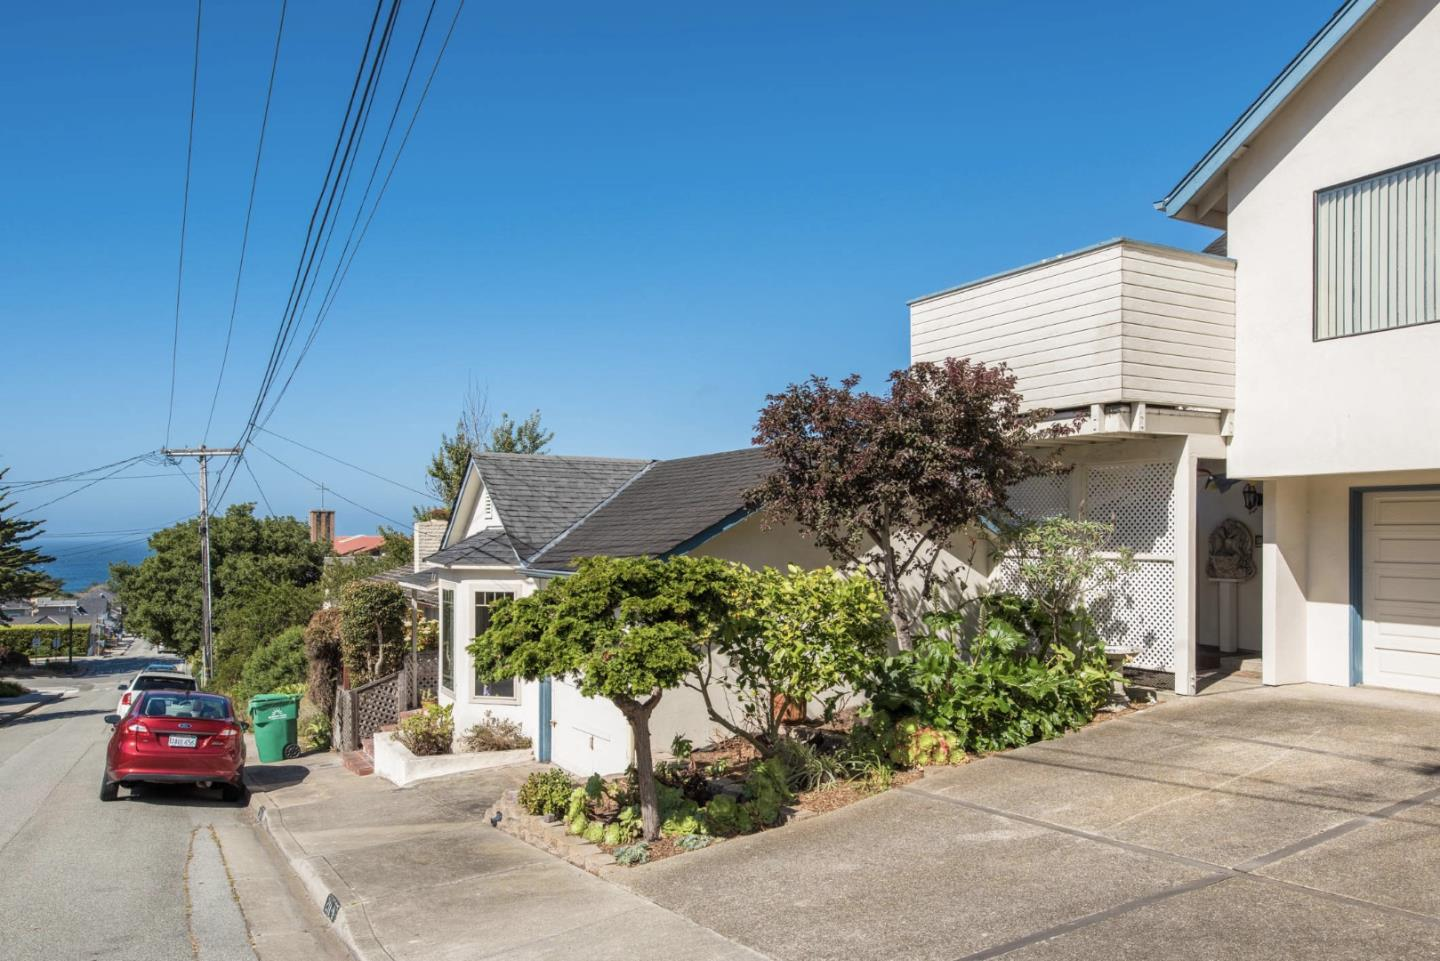 Additional photo for property listing at 211 10th Street  Pacific Grove, カリフォルニア 93950 アメリカ合衆国